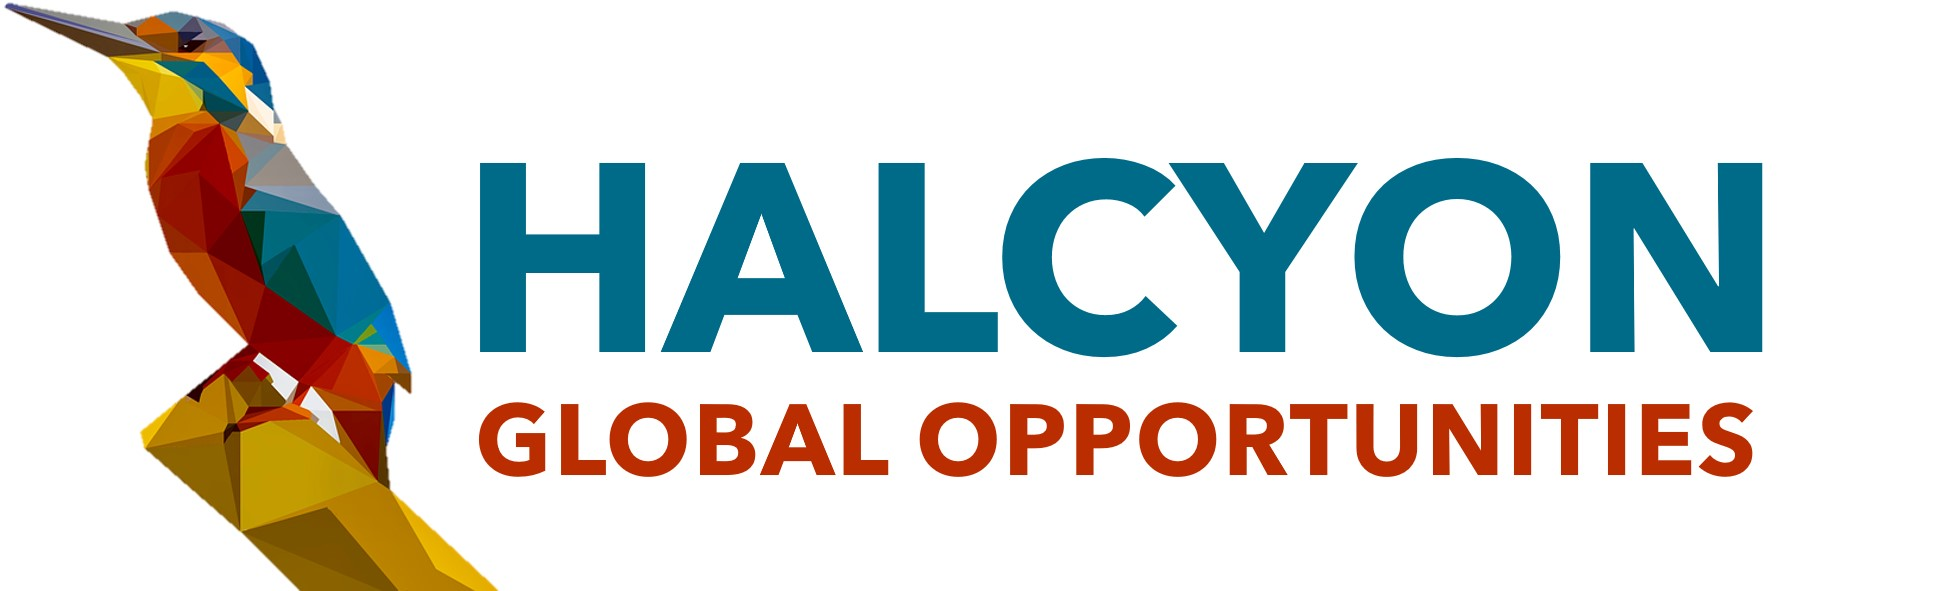 Part-time Intern in Asset Management team at Halcyon Global Opportunities (formerly SPRING) - March 2021, 3 months